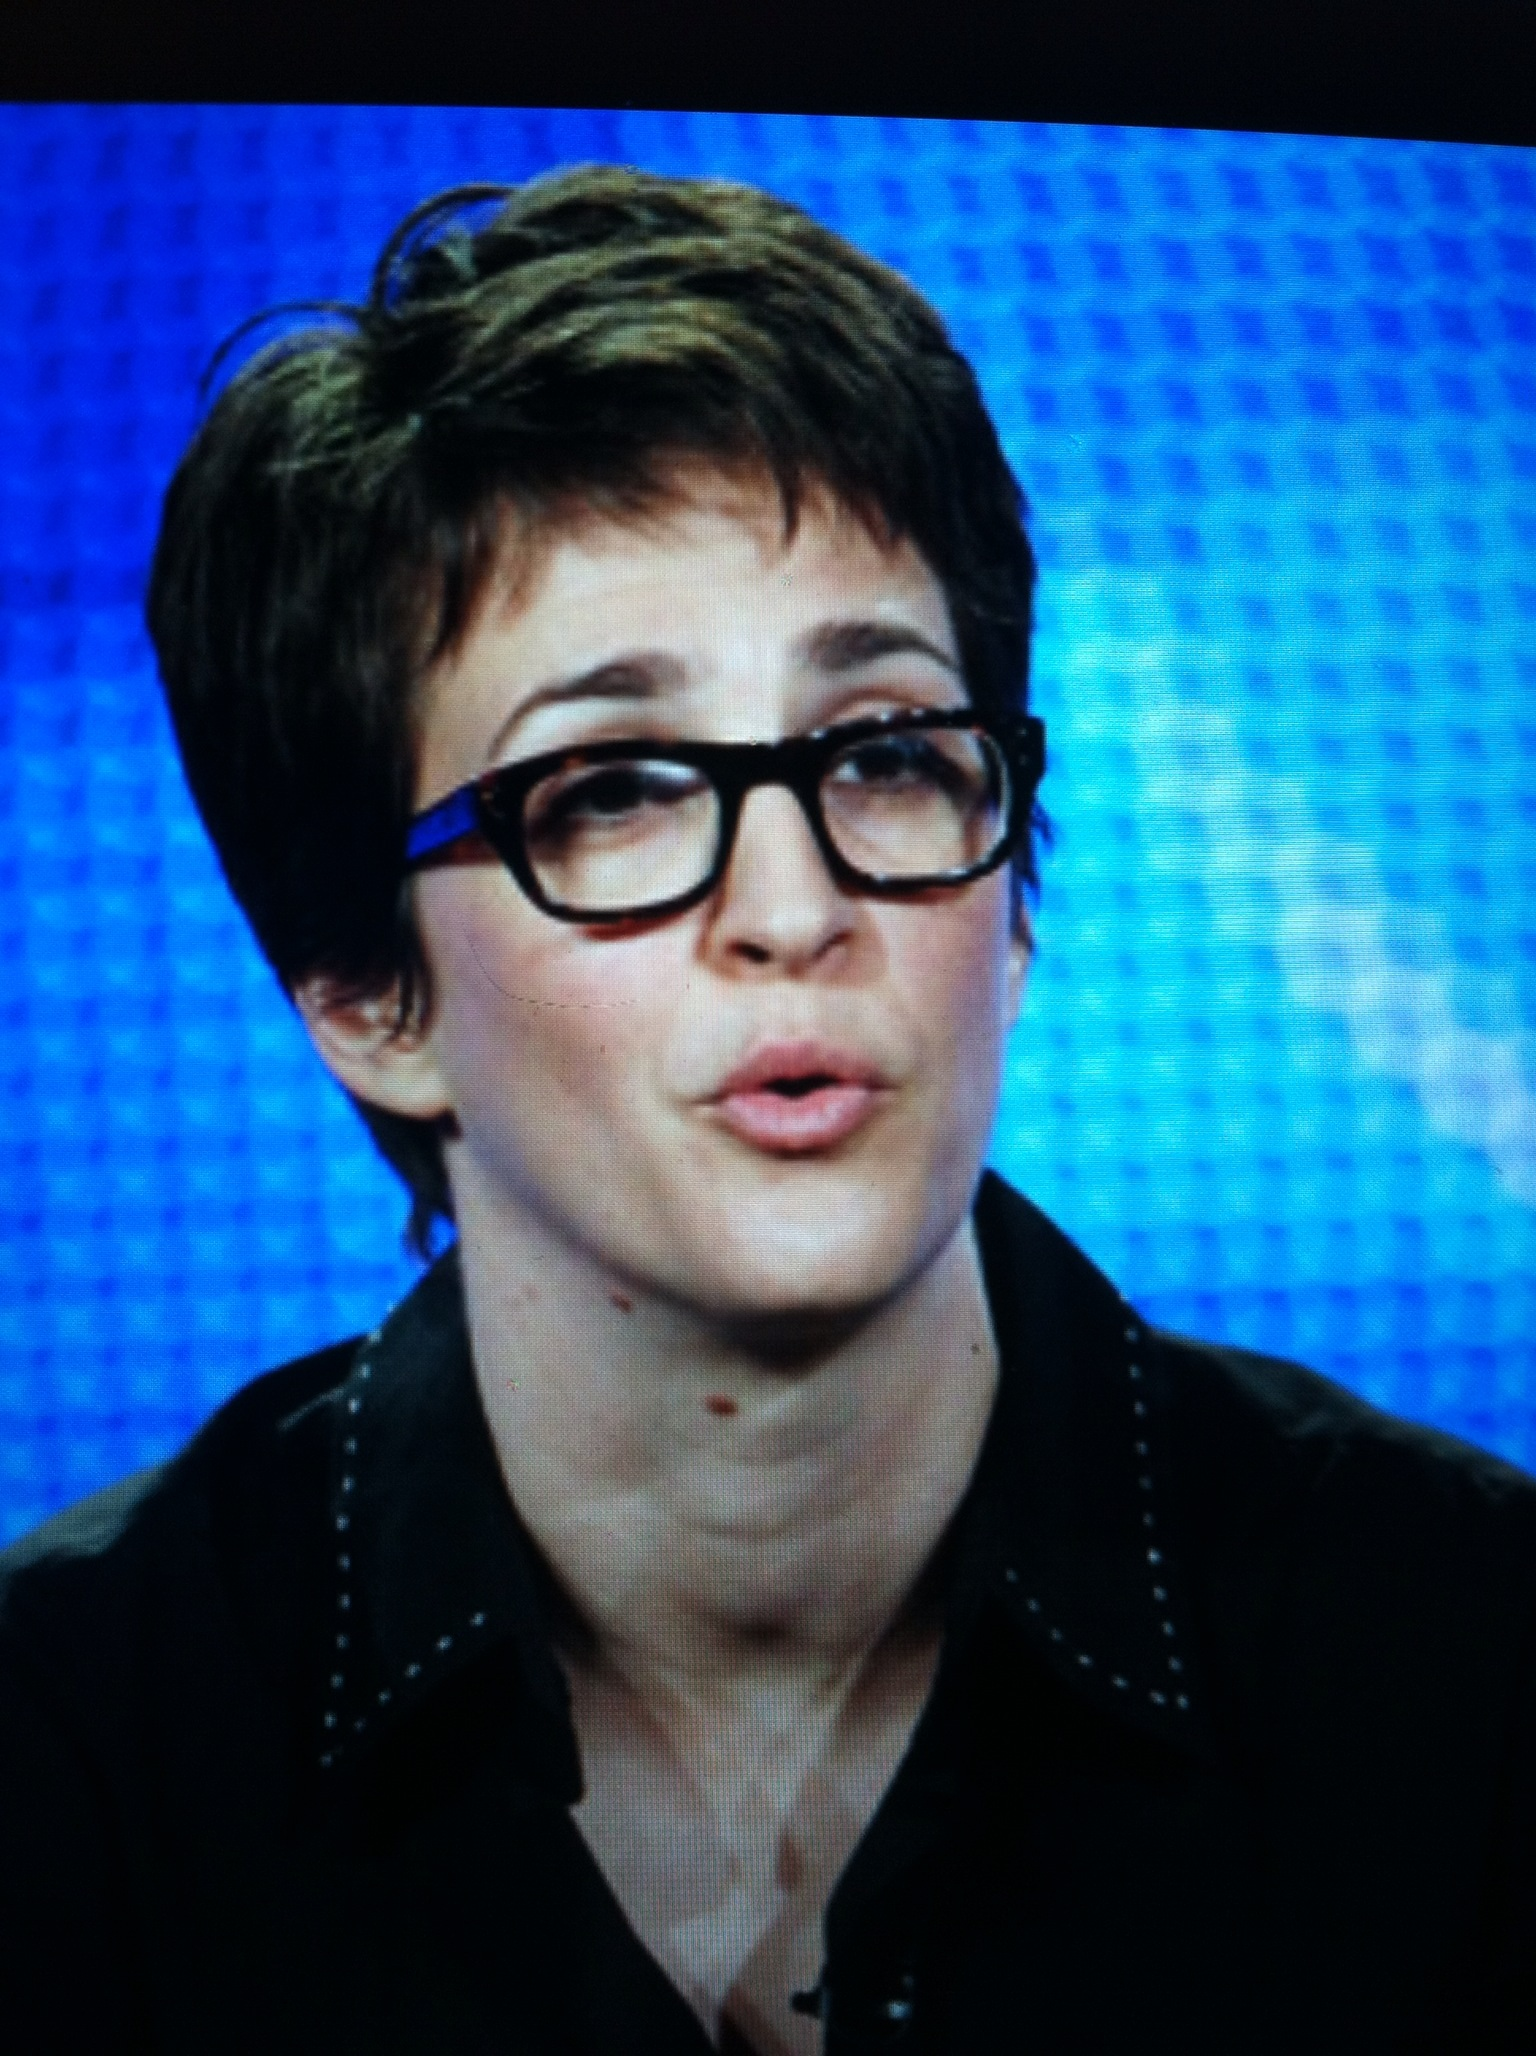 Image result for manly images of Rachel maddow